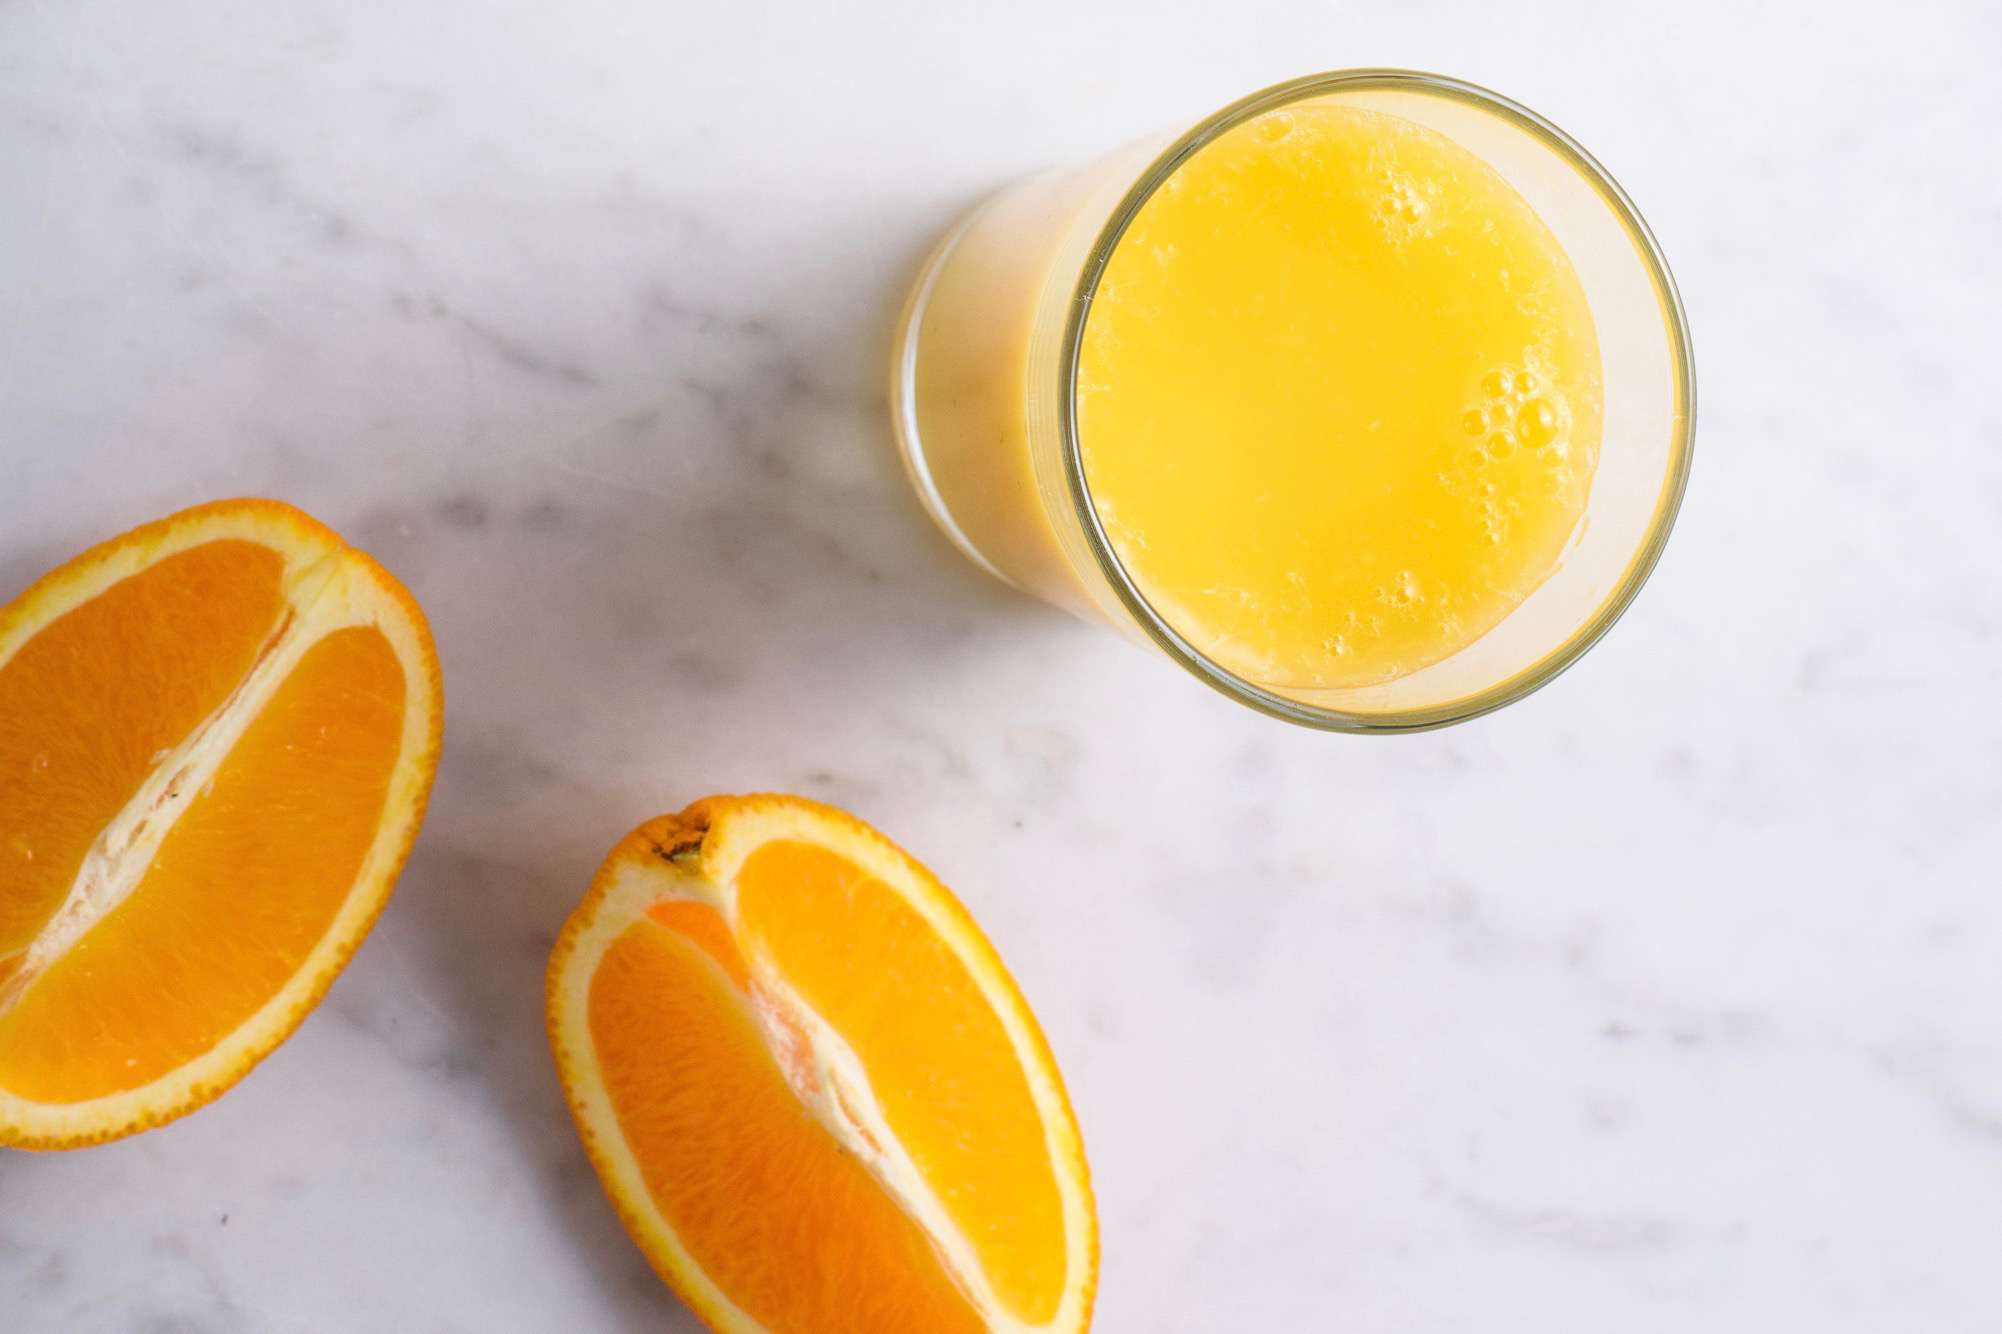 15 Healthy Foods That Are High In Vitamin C